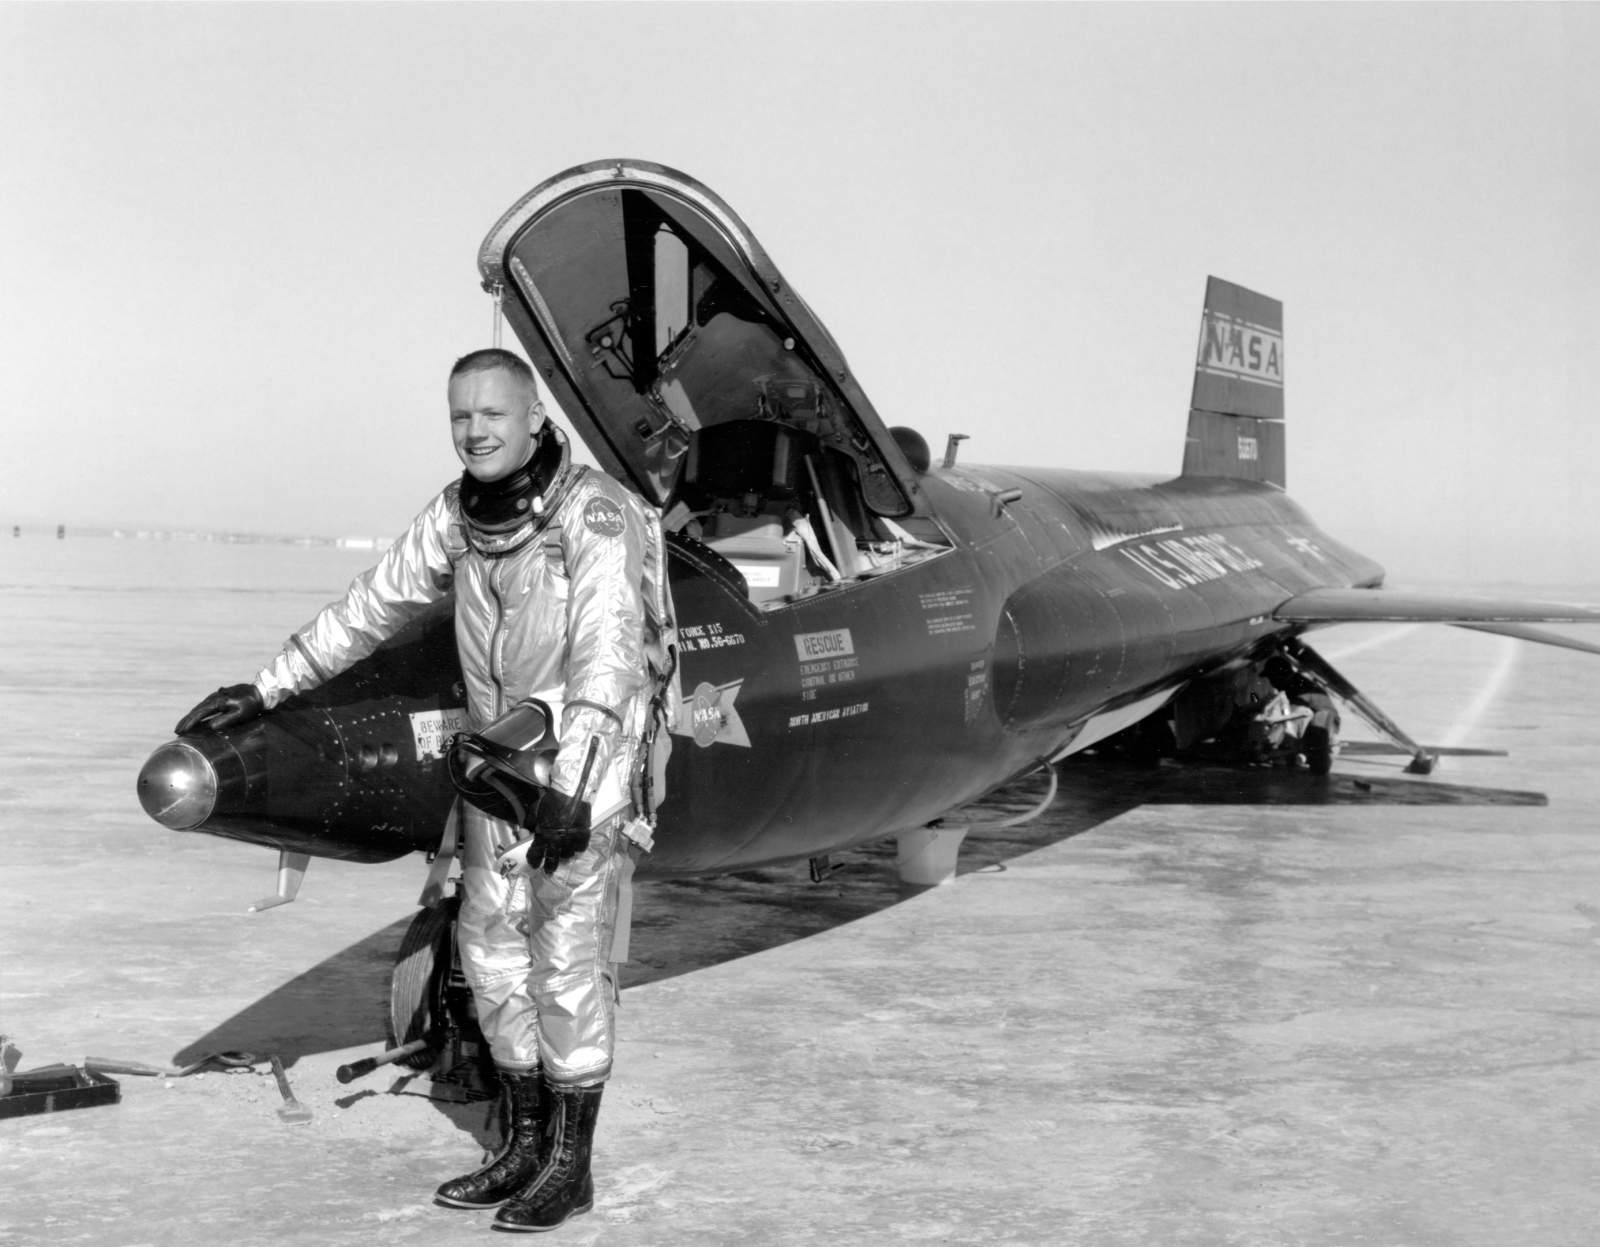 X-15 with Armstrong